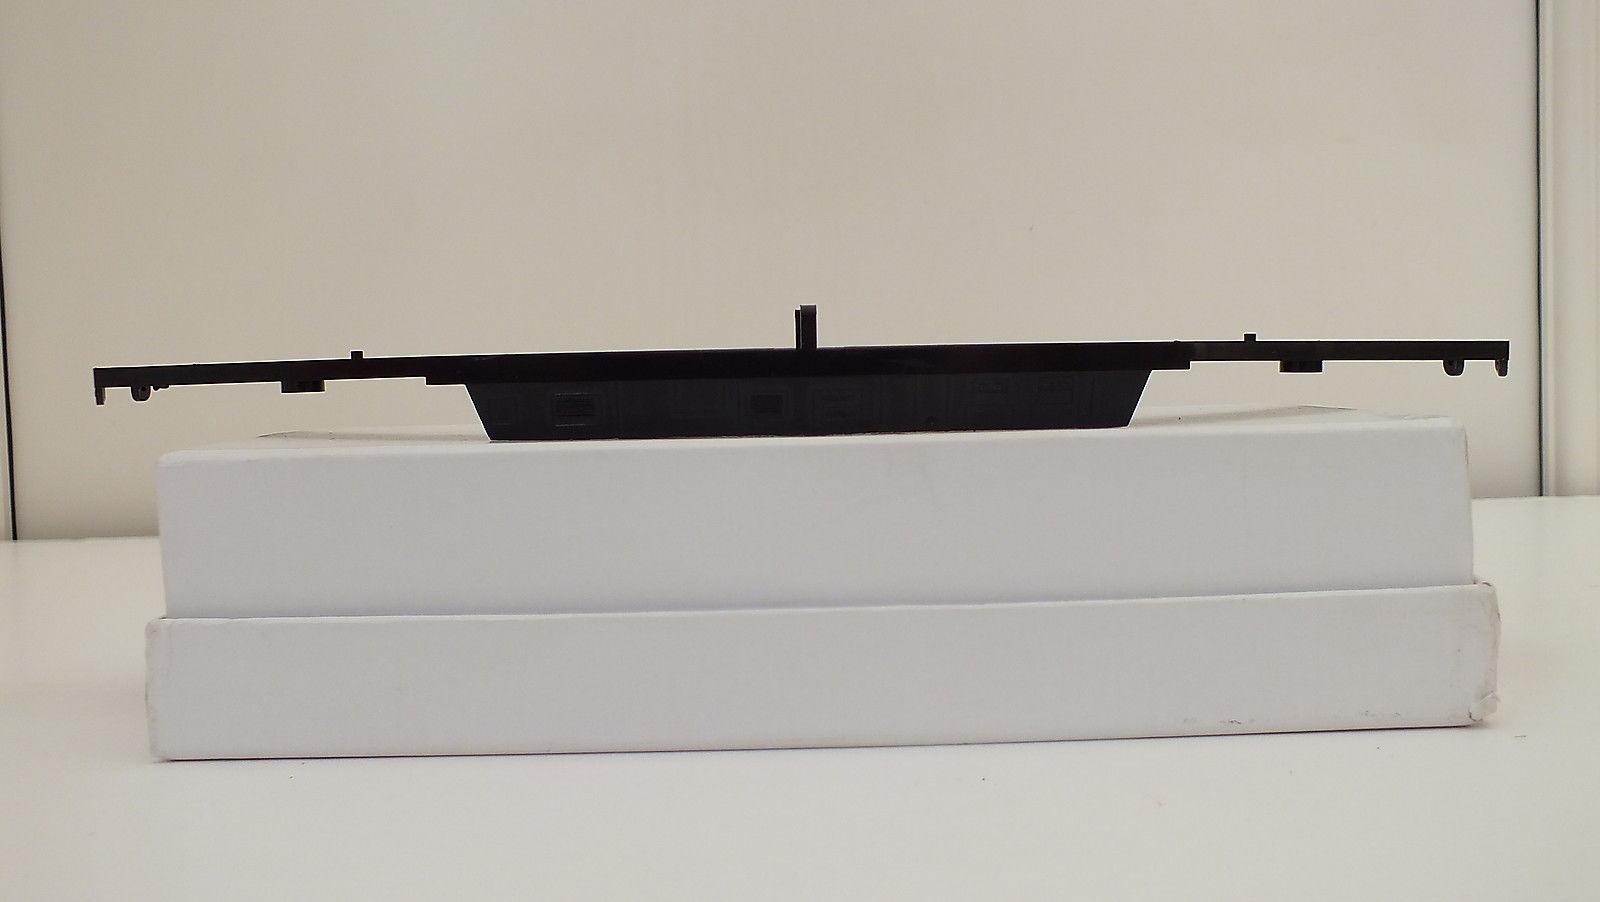 MS166 HORNBY TRIANG SPARE PARTS MK3 COACH UNDERFRAME  S16C